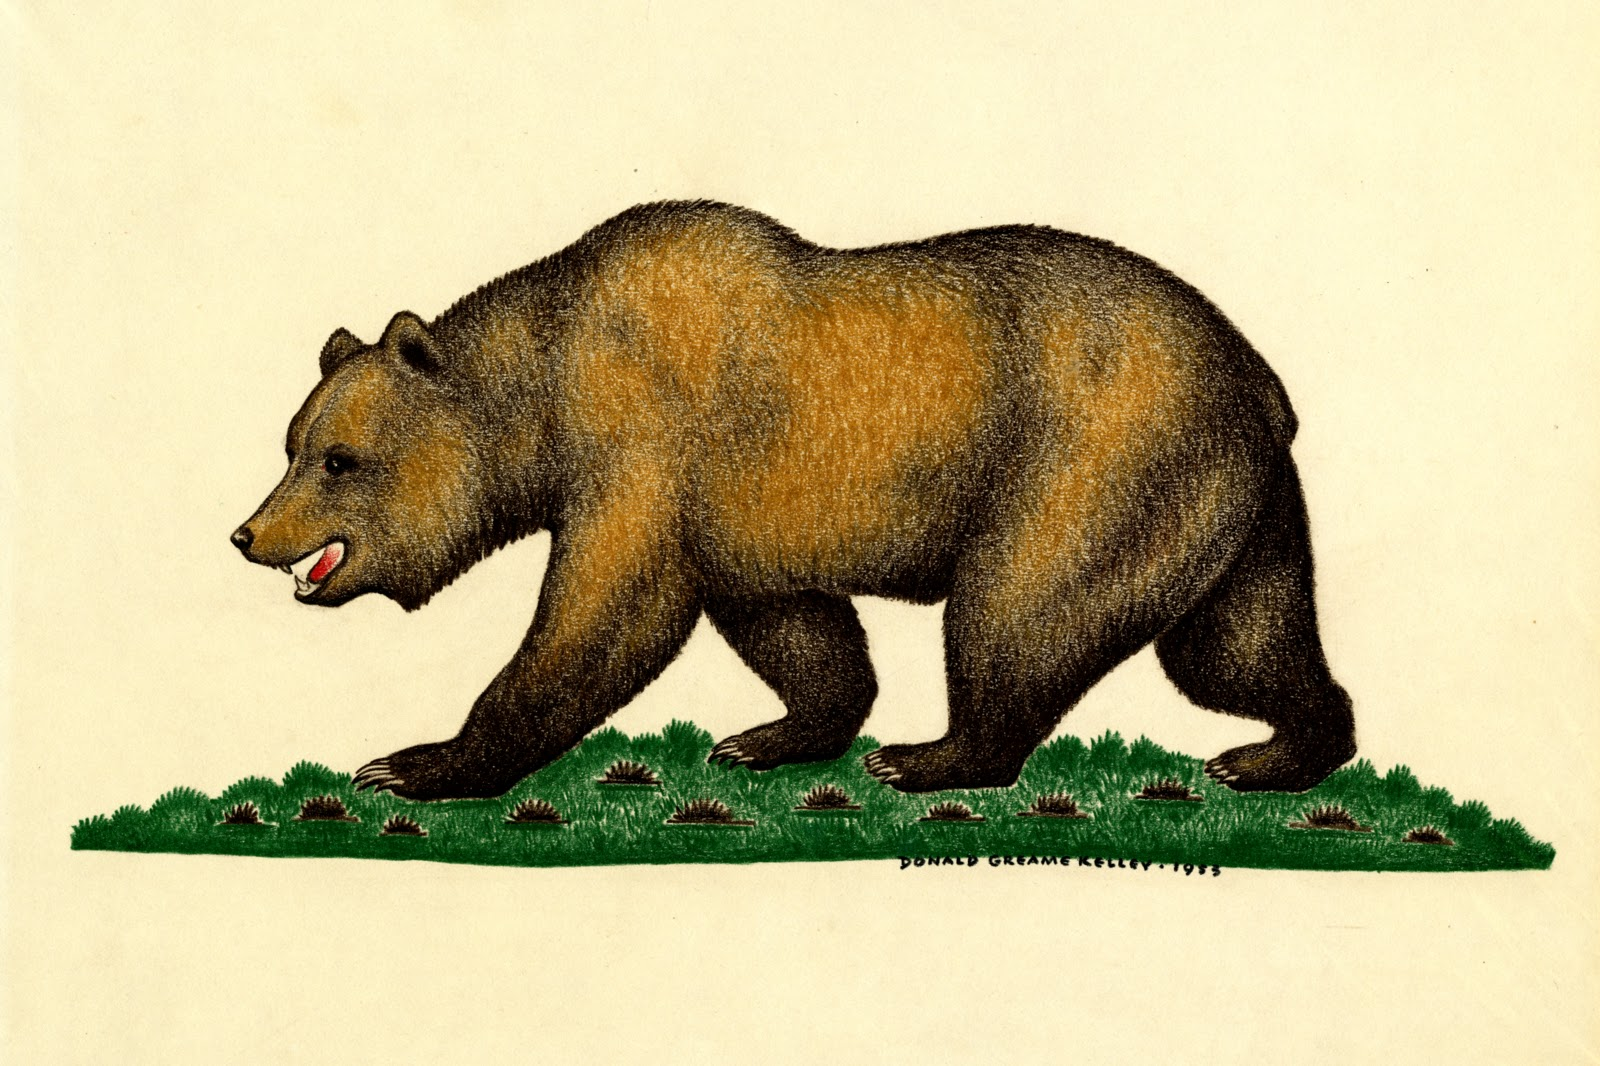 Donald Greame Kelley 1953 Grizzly Bear